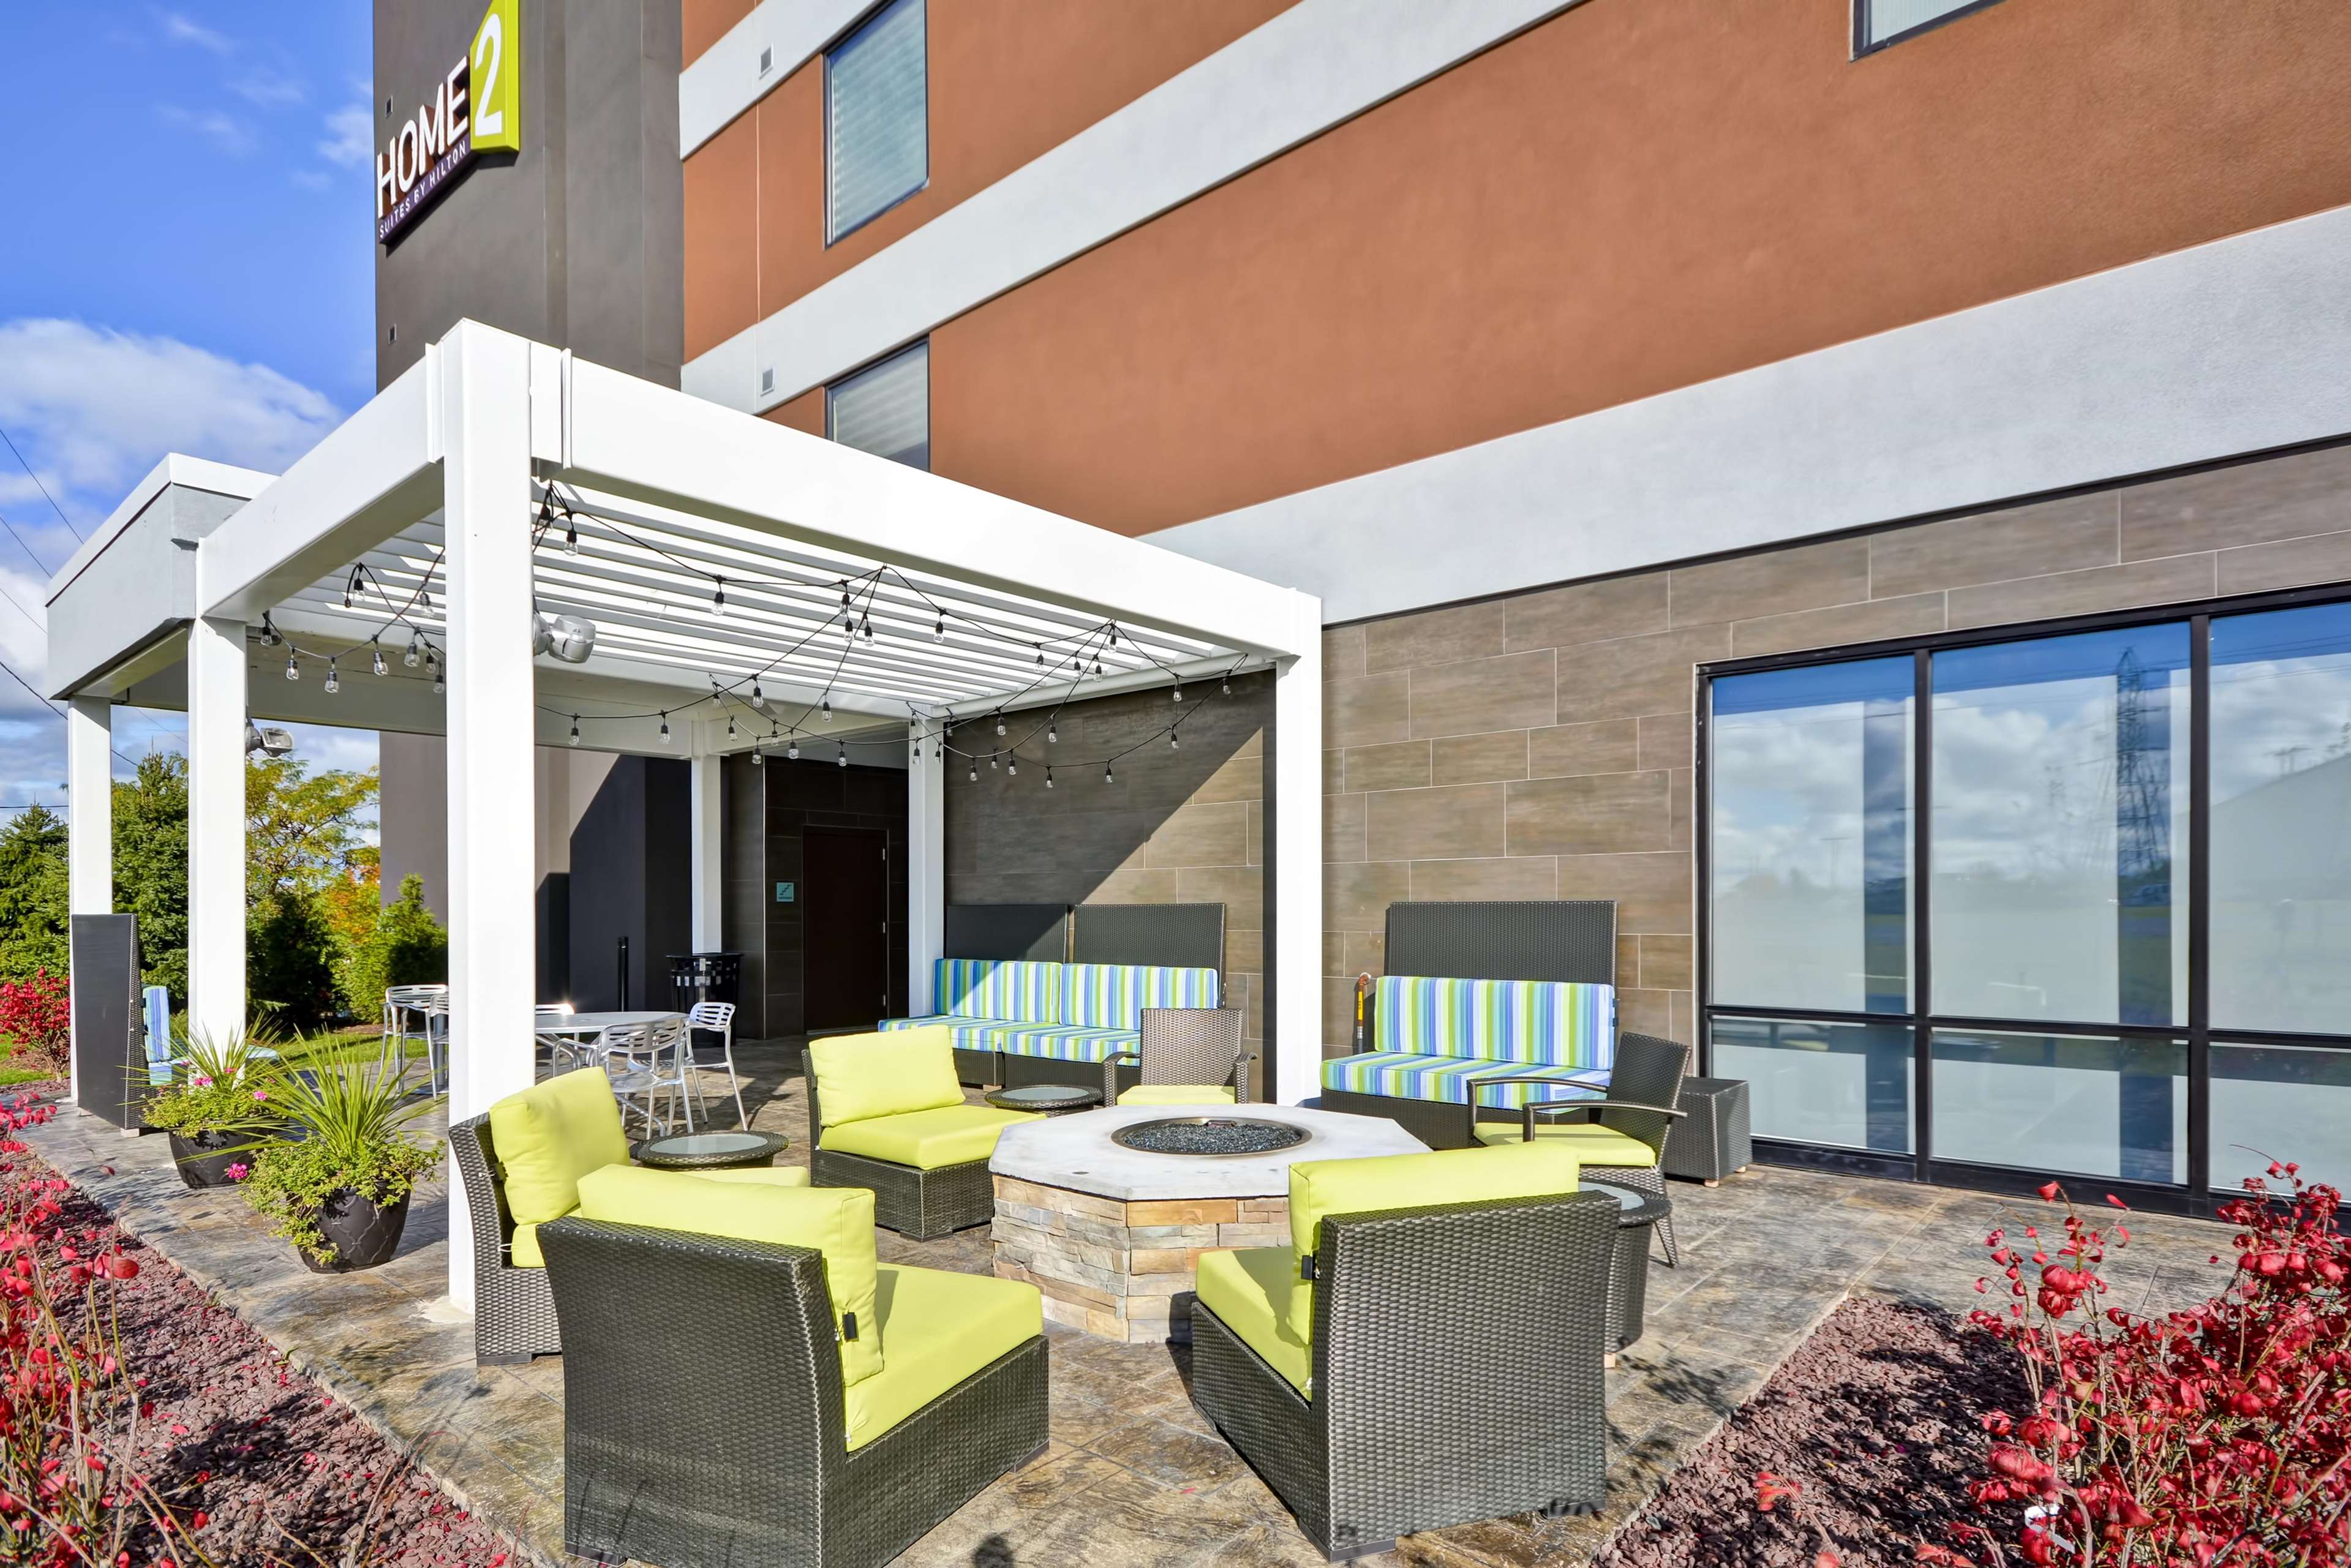 Home2 Suites by Hilton Oswego image 1